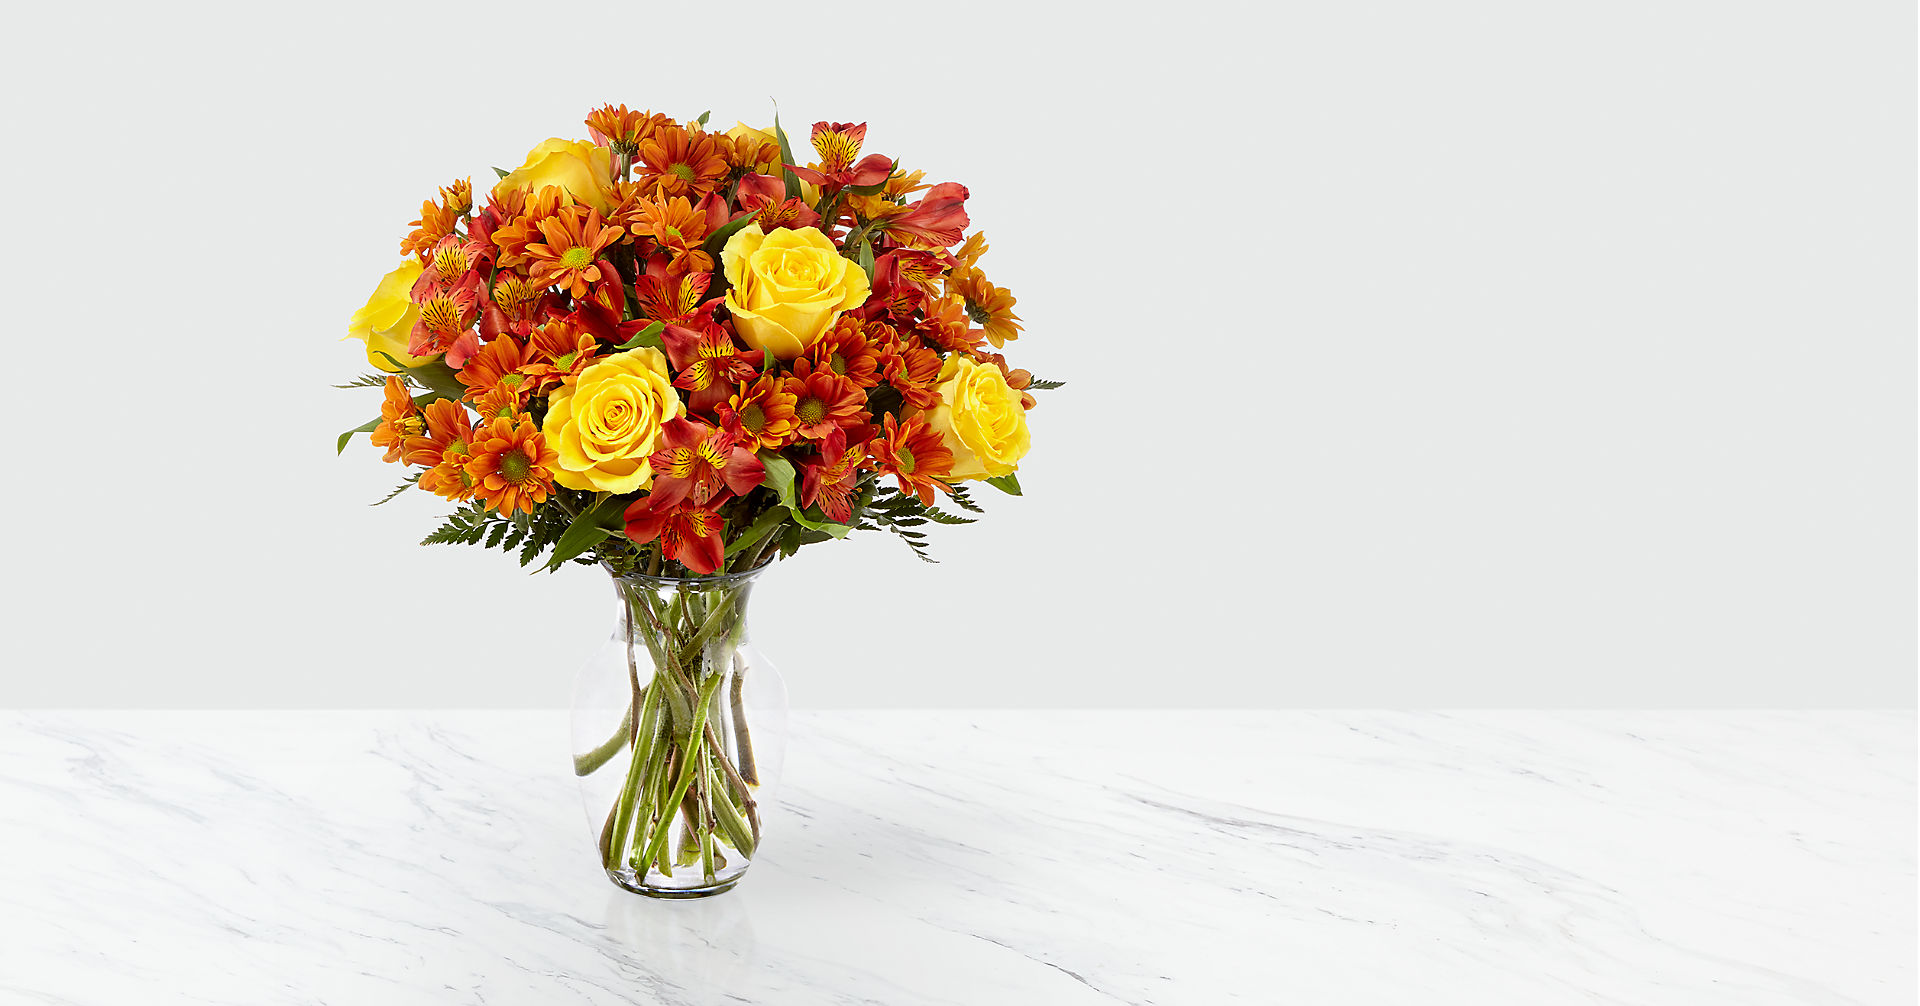 Golden Autumn™ Bouquet - Image 1 Of 3